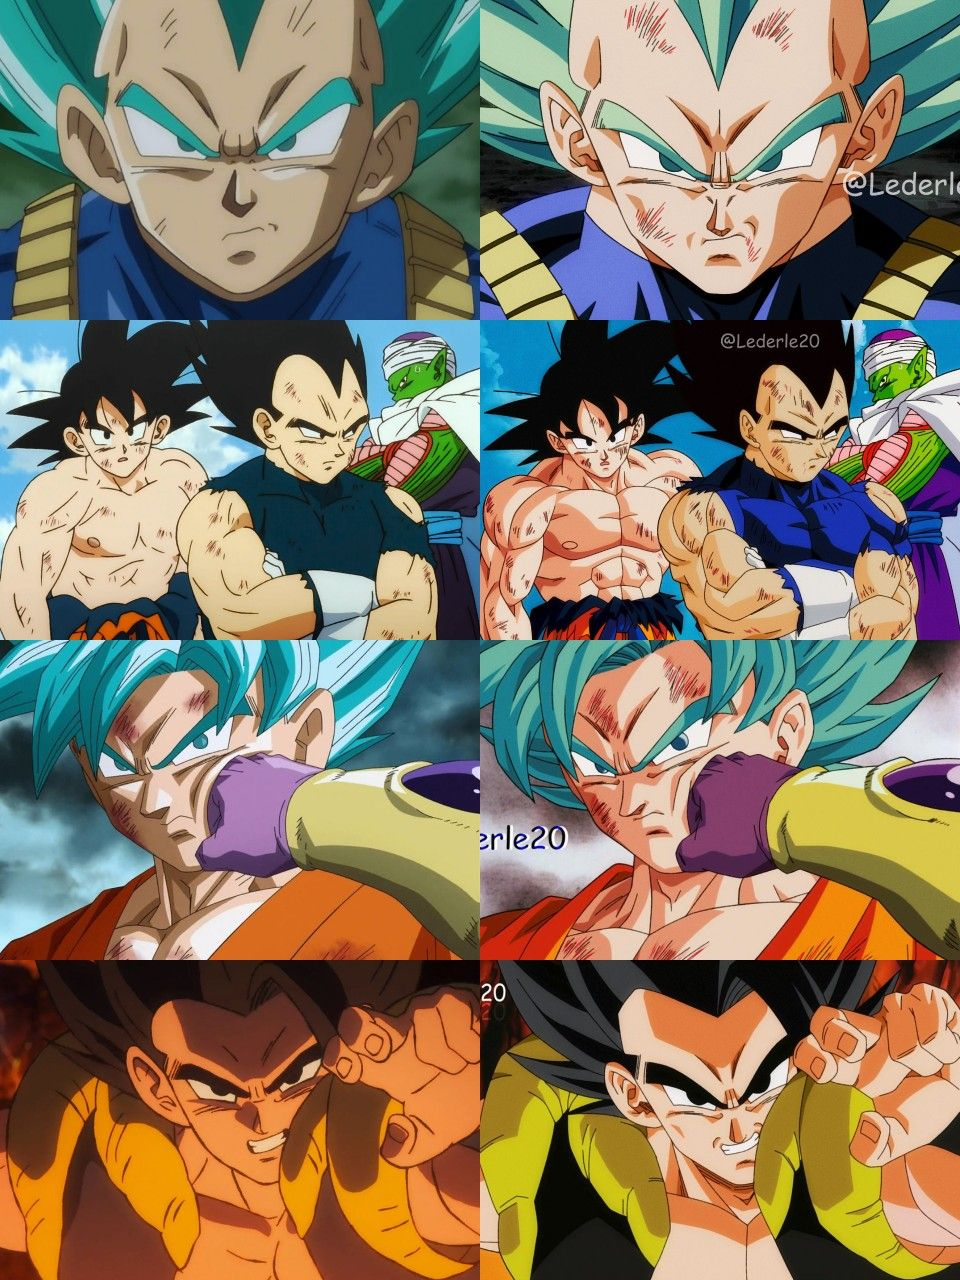 240 Dragon Ball Super 90 S Version Ideas In 2021 Dragon Ball Super Dragon Ball Dragon